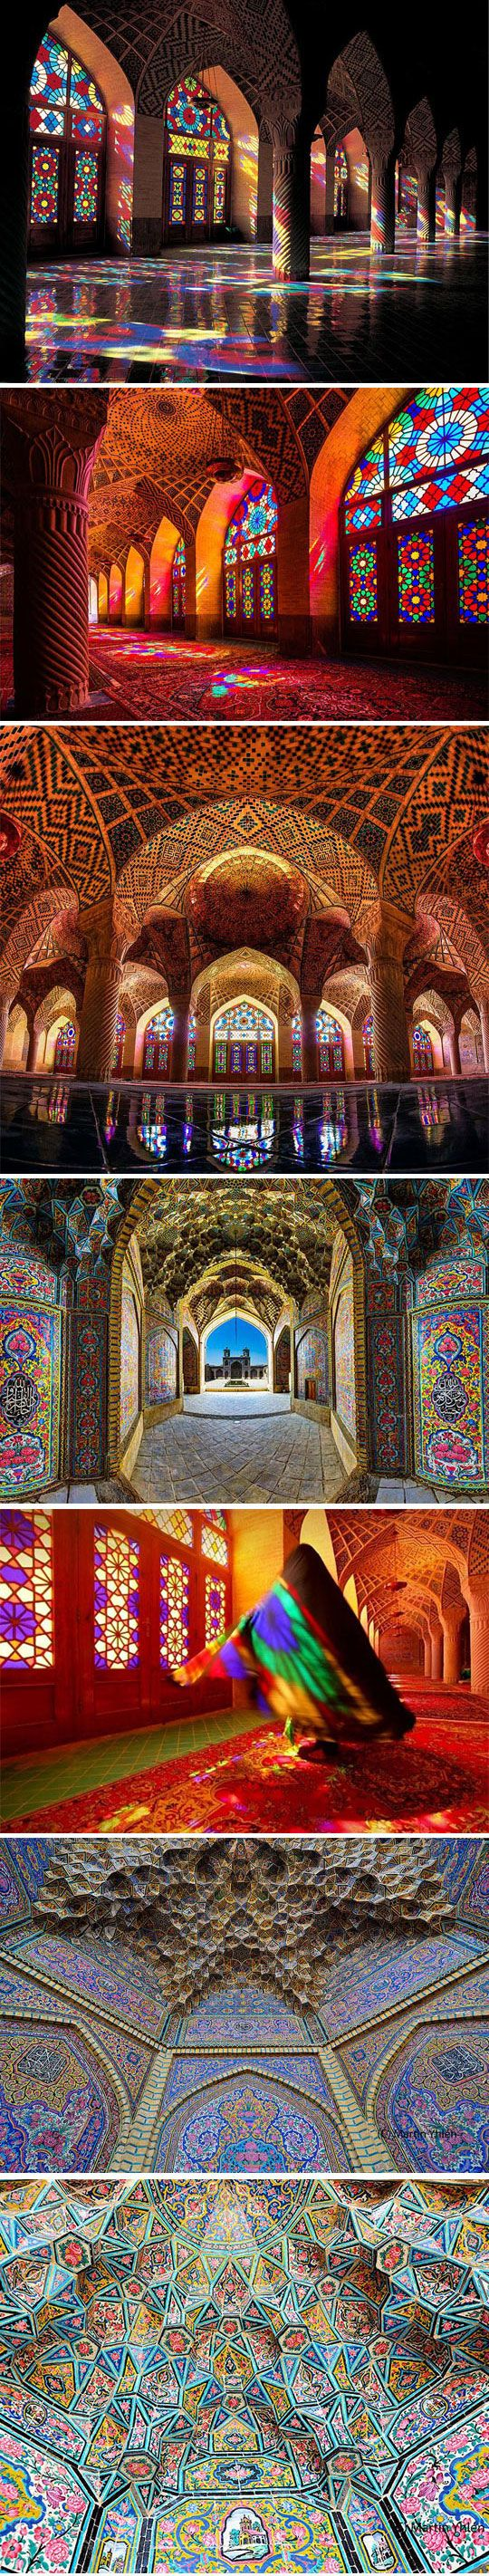 :::: PINTEREST.COM christiancross ::::  A Stunning Mosque, Illuminated With All Of The Colors Of The Rainbow